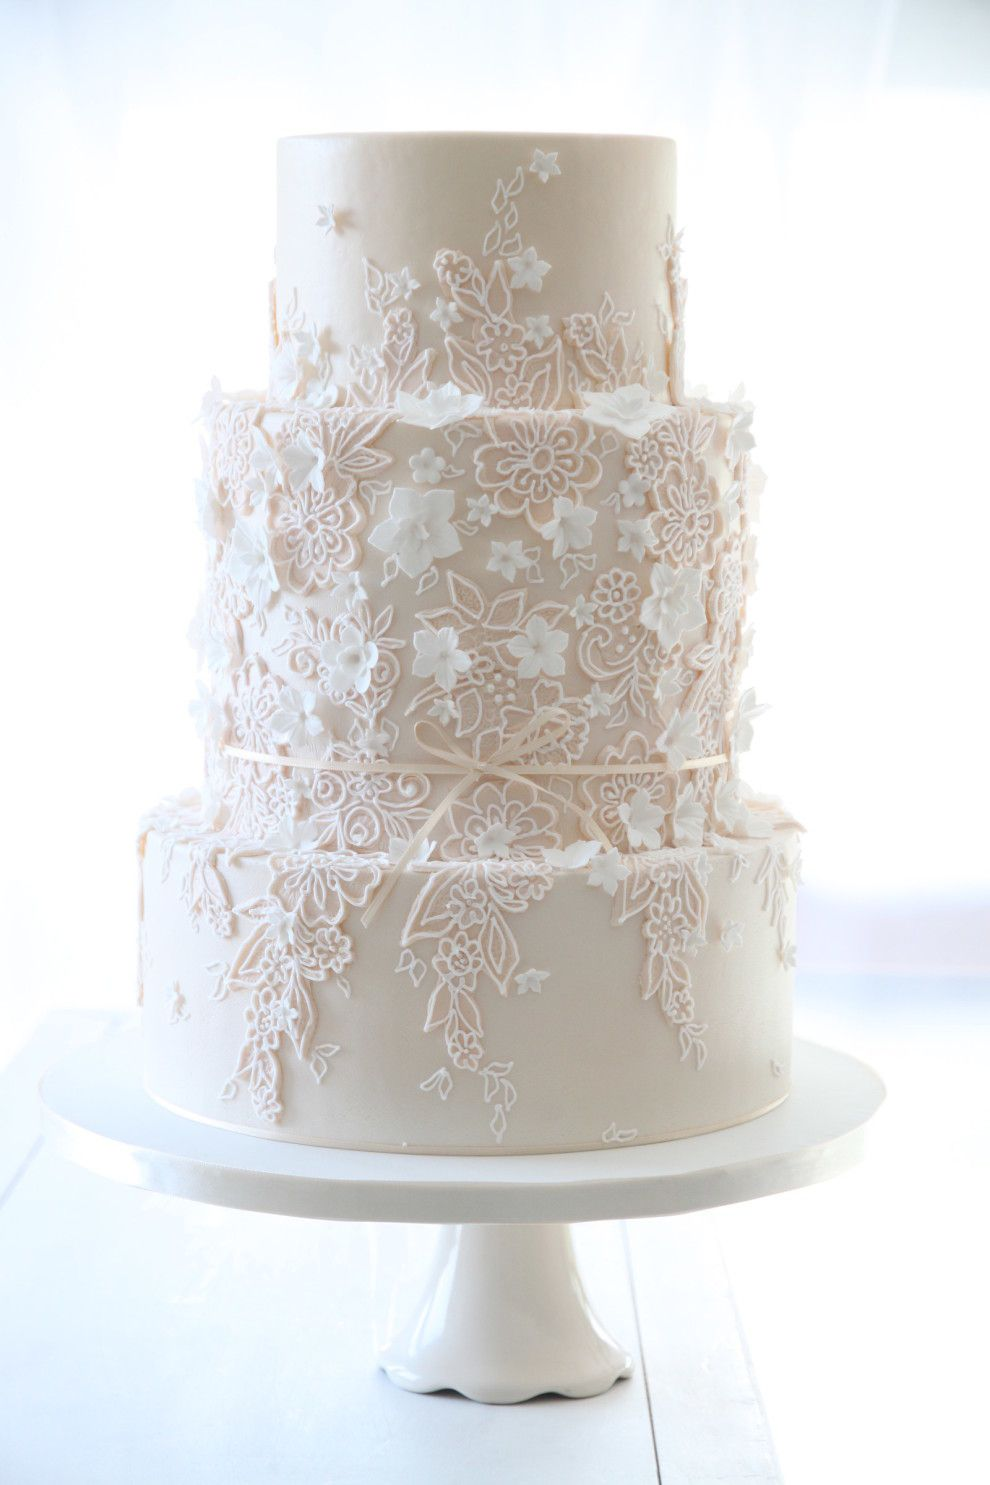 This understated cake with an intricate lace design.   Lace design ...